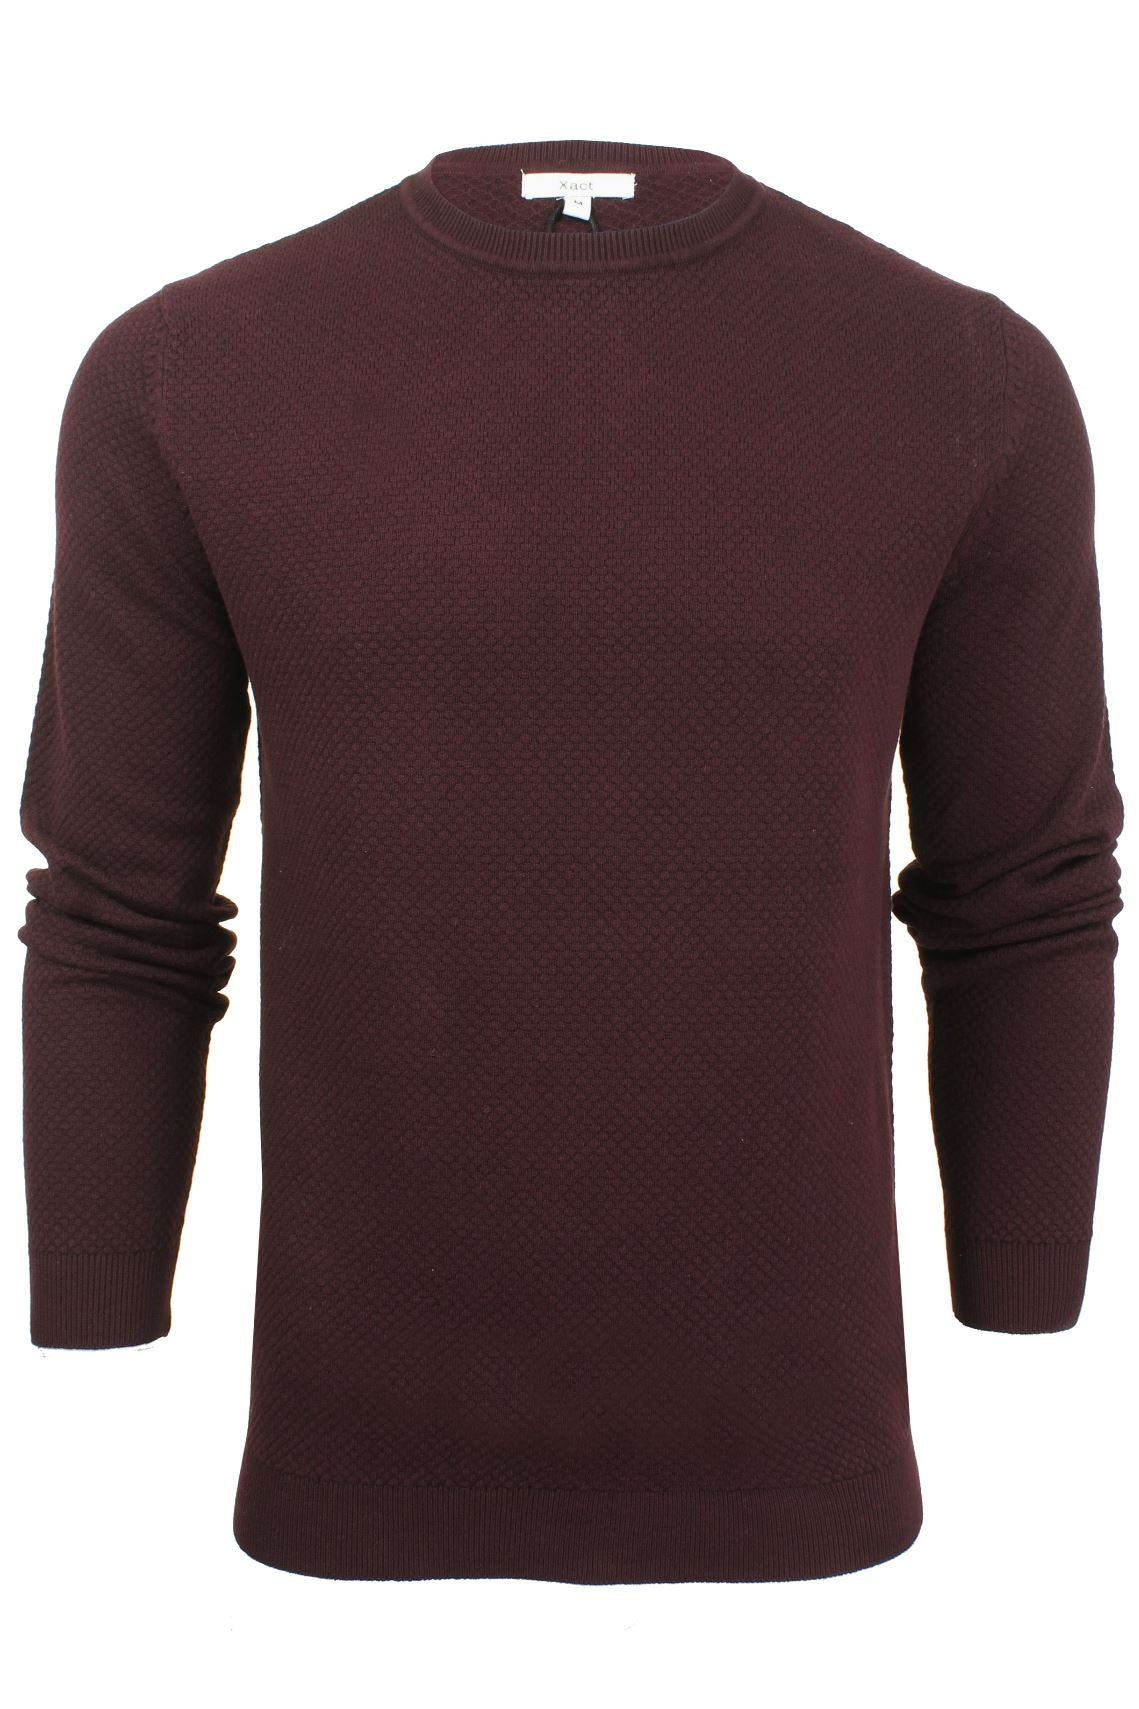 Xact Mens Crew Neck Cotton Jumper_01_XK1013_Merlot